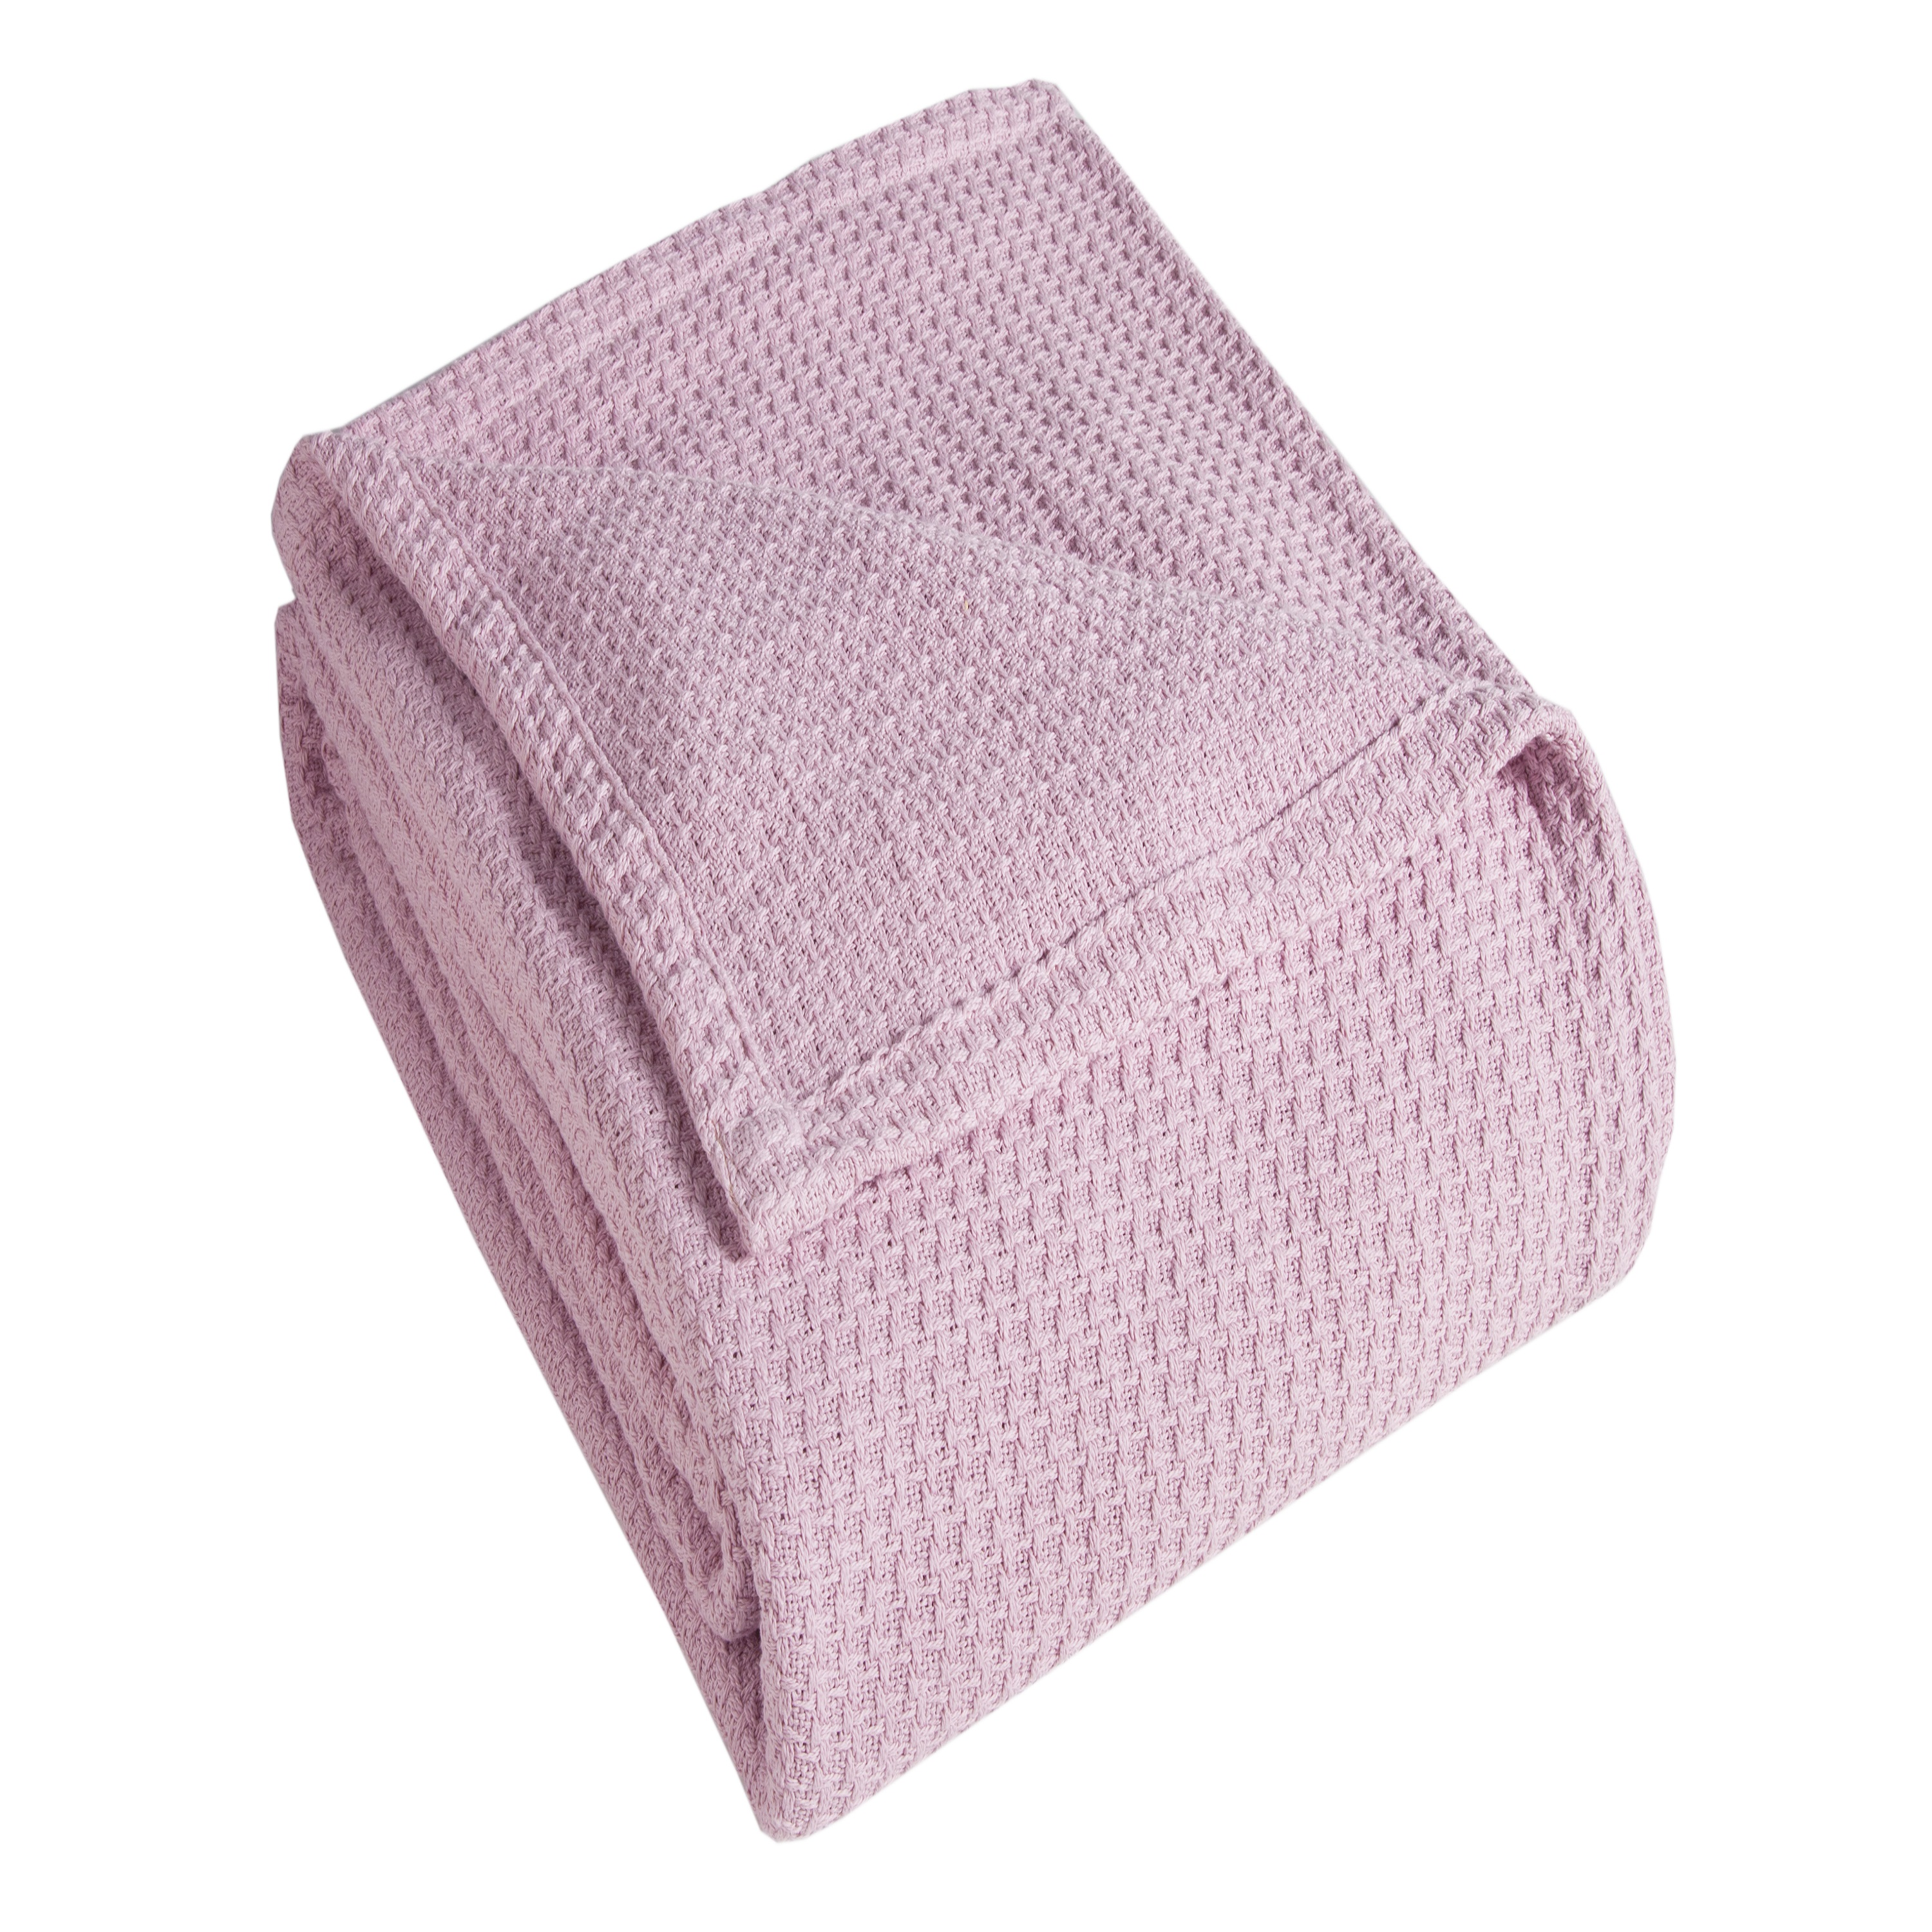 Grand Hotel Woven Cotton Blanket, Full/Queen, Pink ...